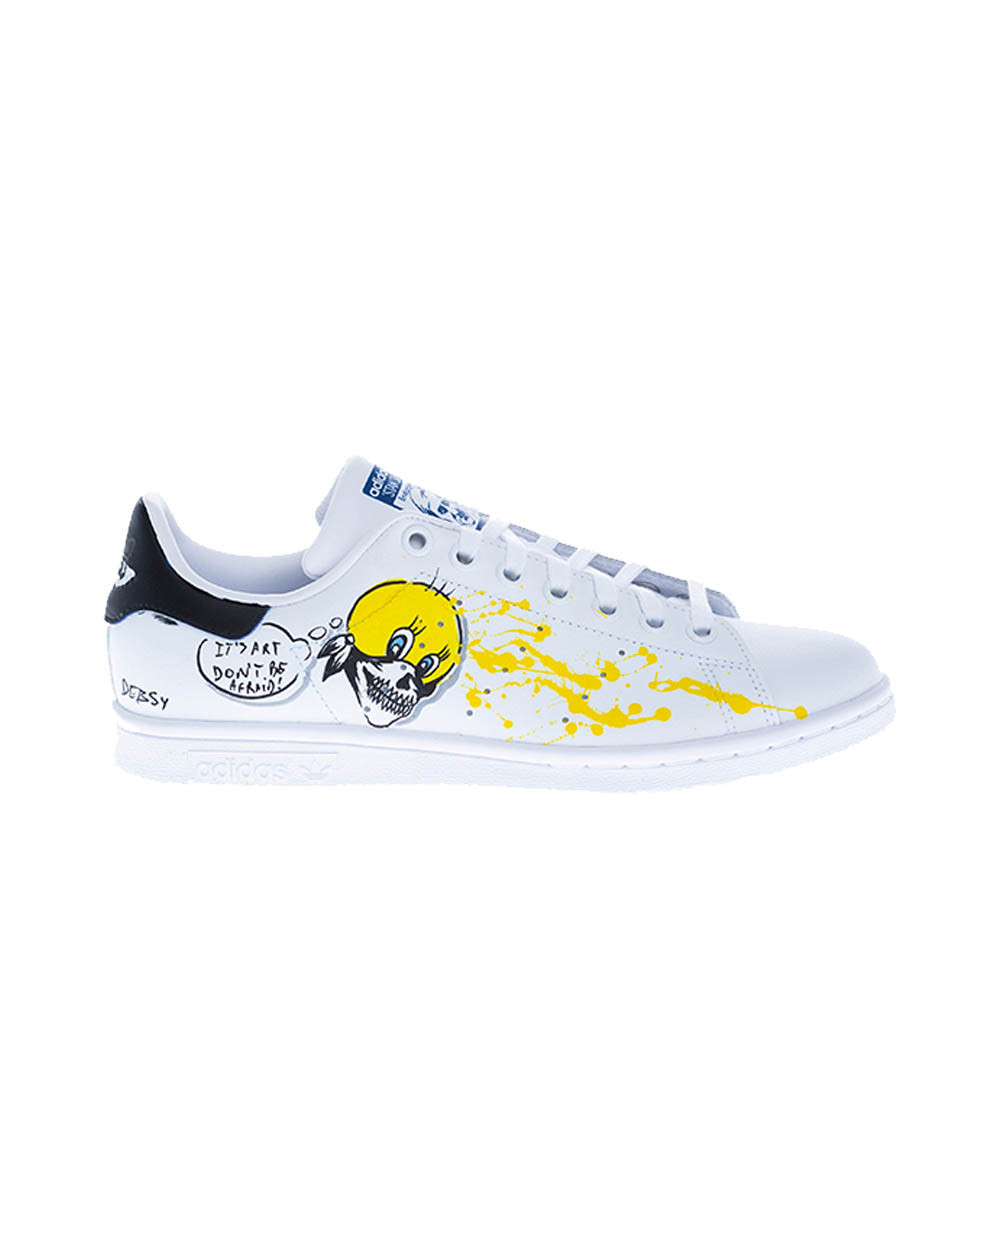 Debsy - Customized Stan Smith sneakers